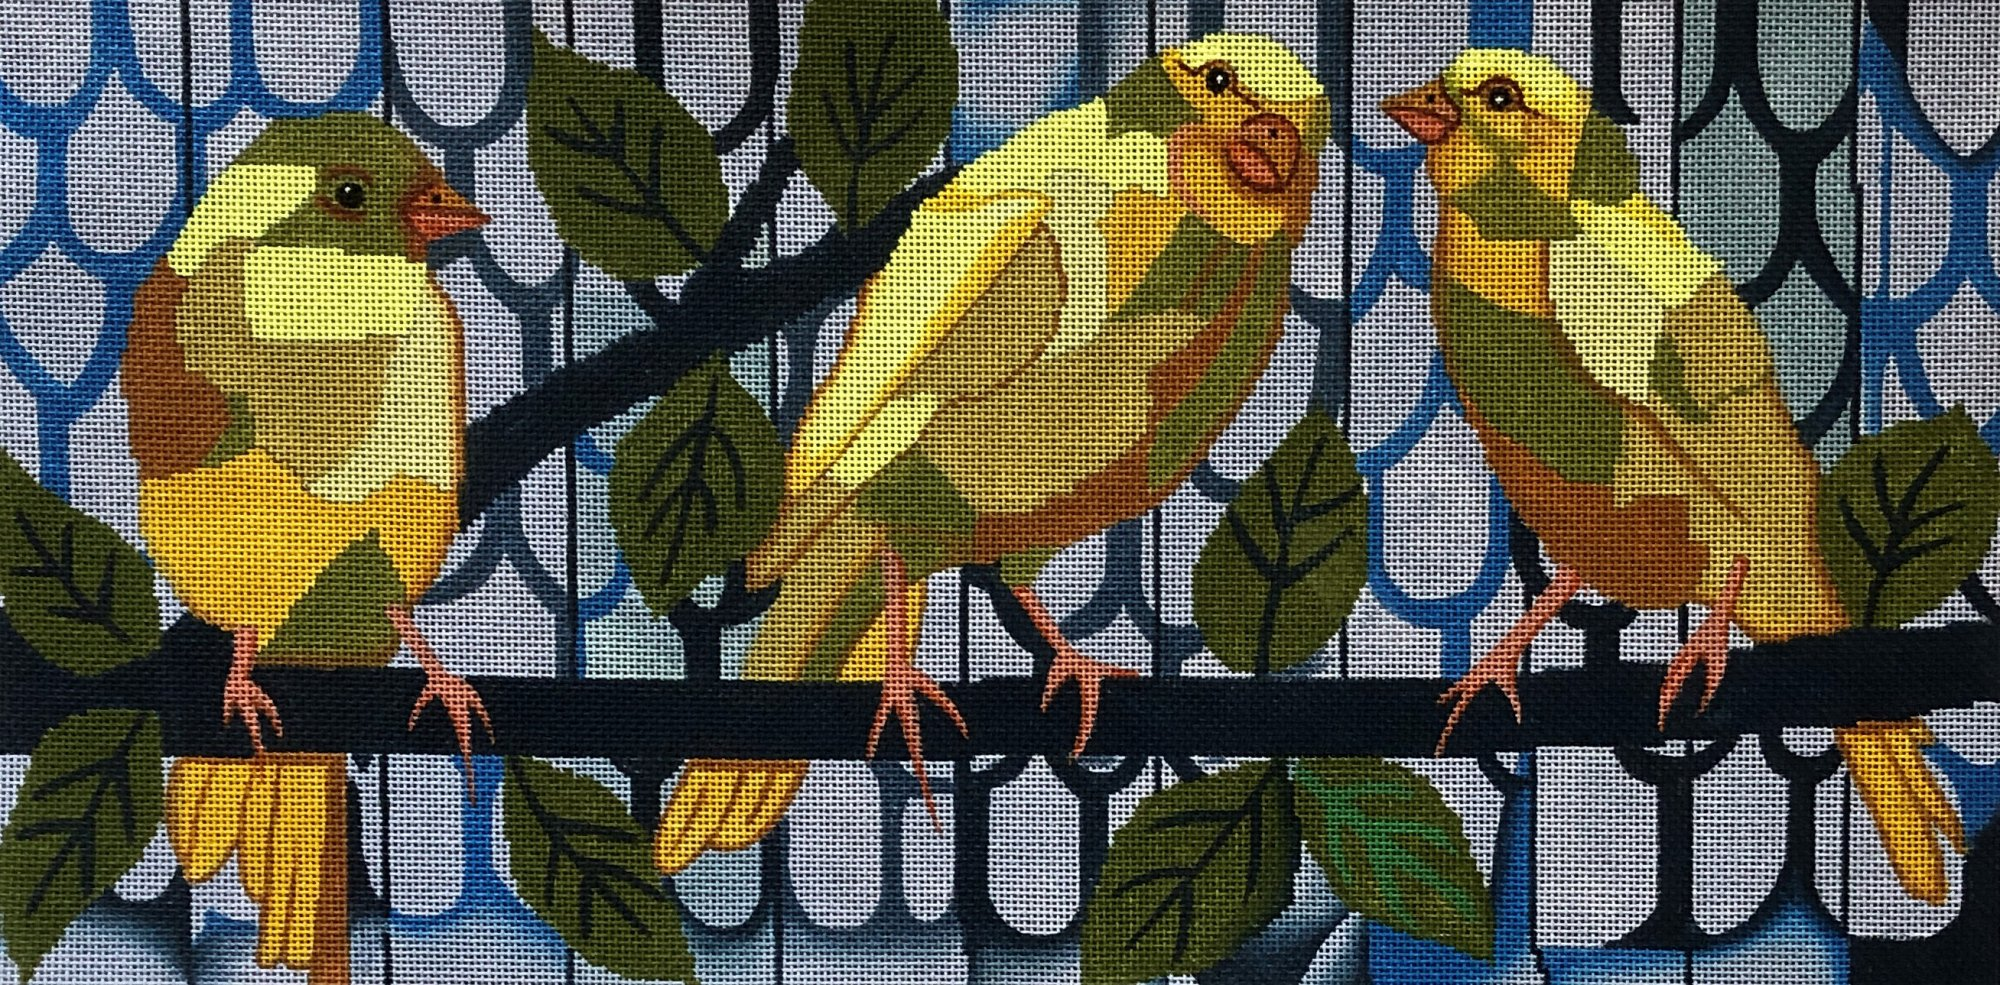 50024 - PARAKEETS ON BRANCH